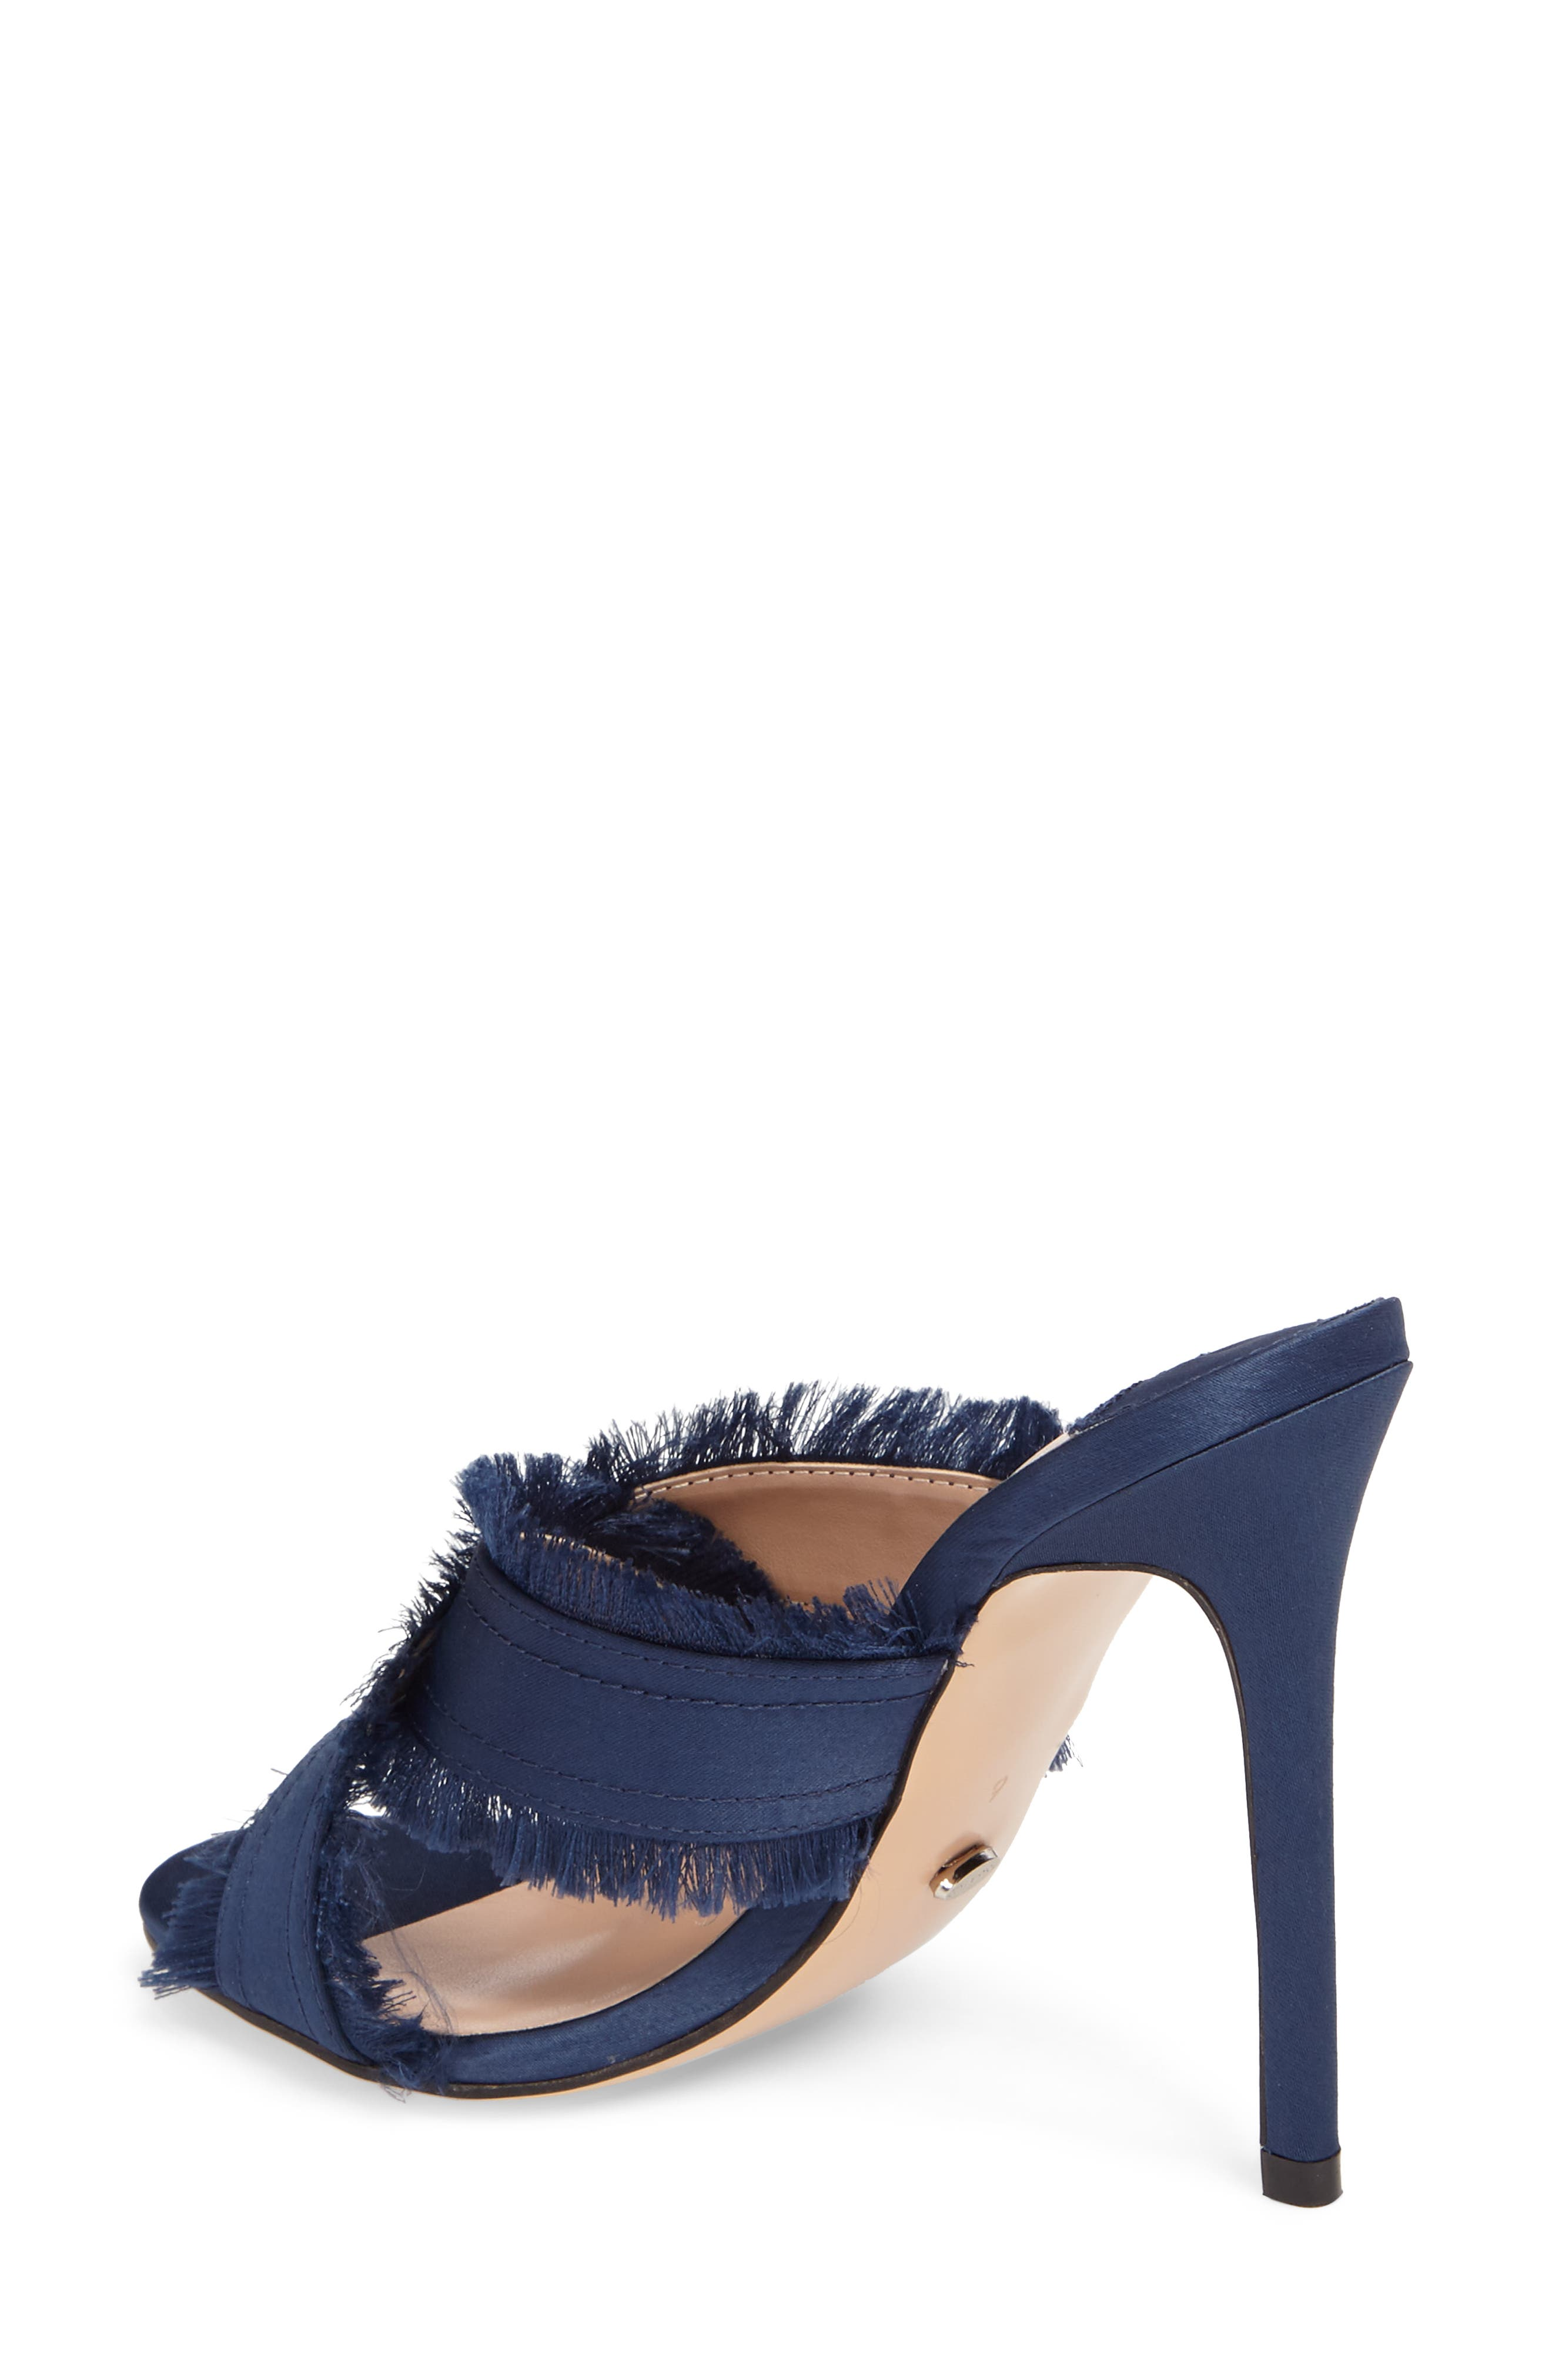 Klay Fringed Cross Strap Mule,                             Alternate thumbnail 2, color,                             Navy Luxe Satin